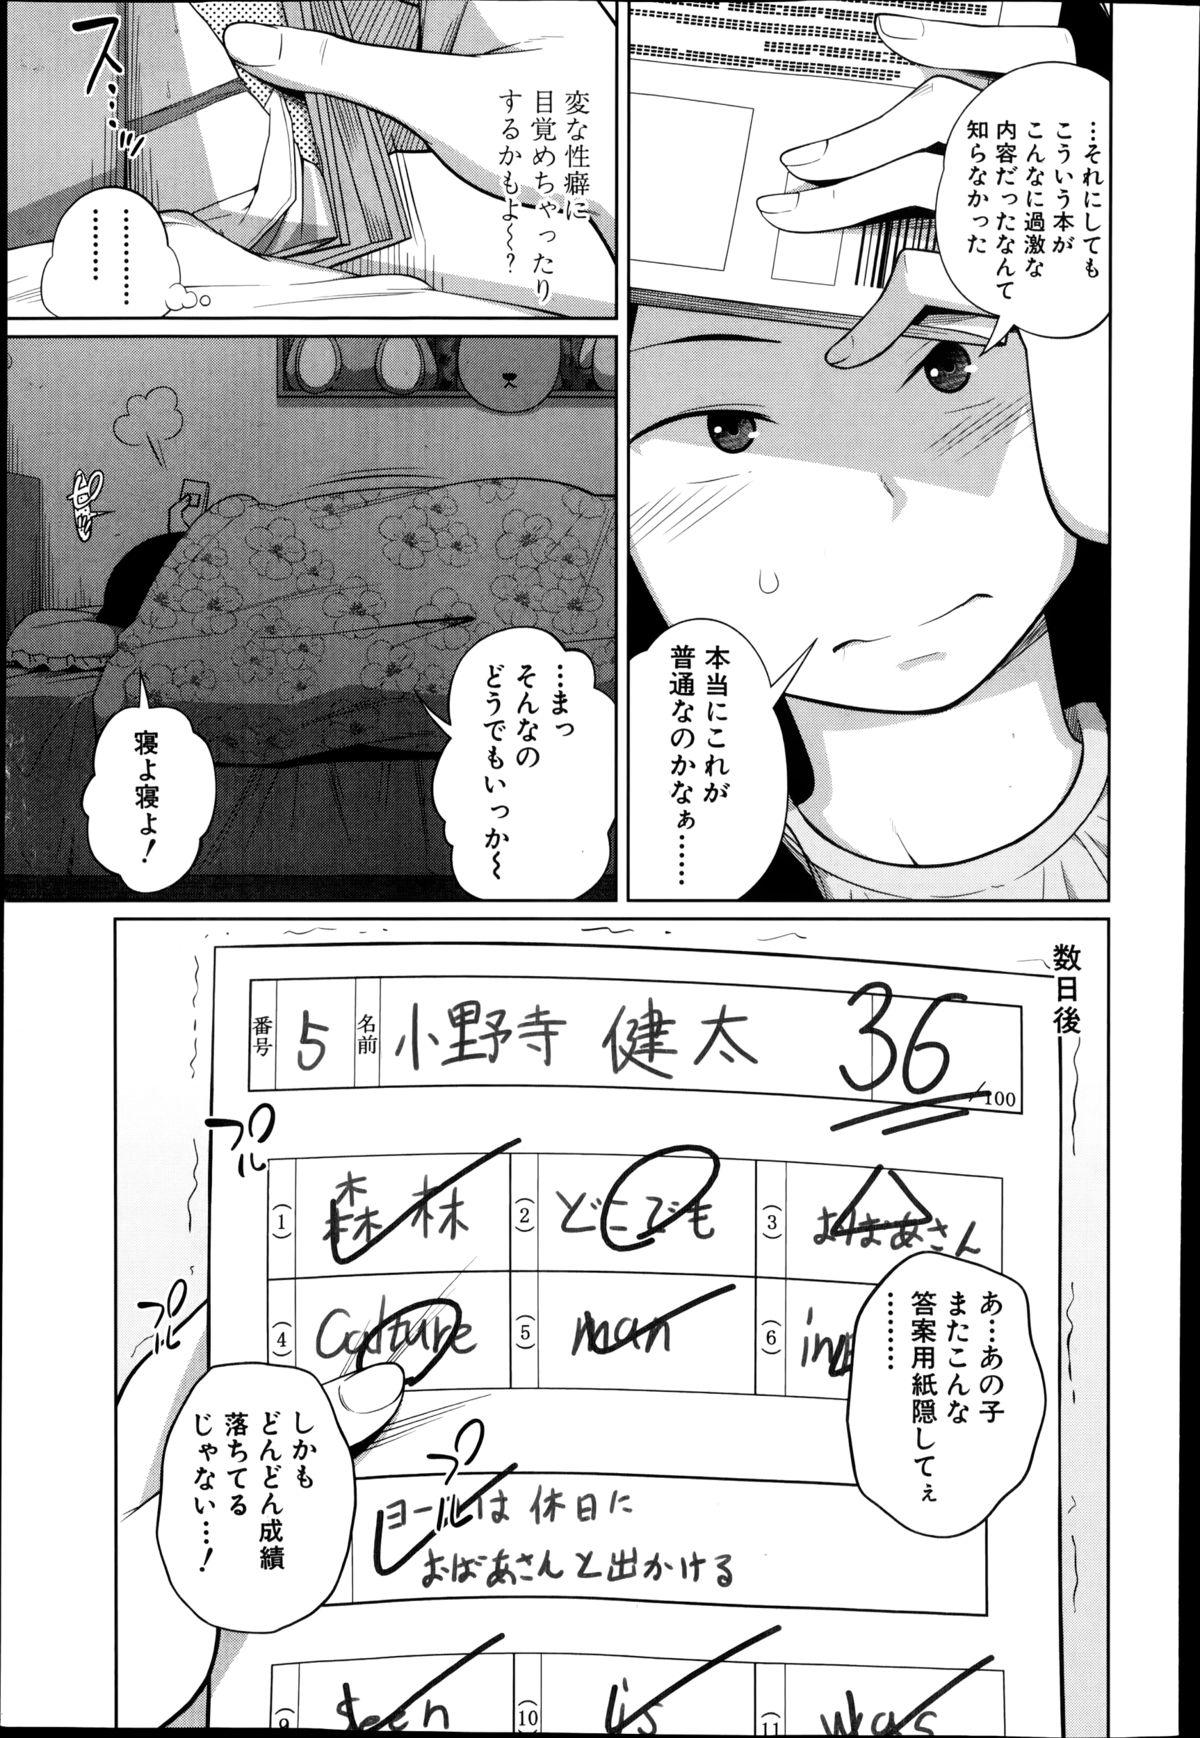 BUSTER COMIC 2014-09 148